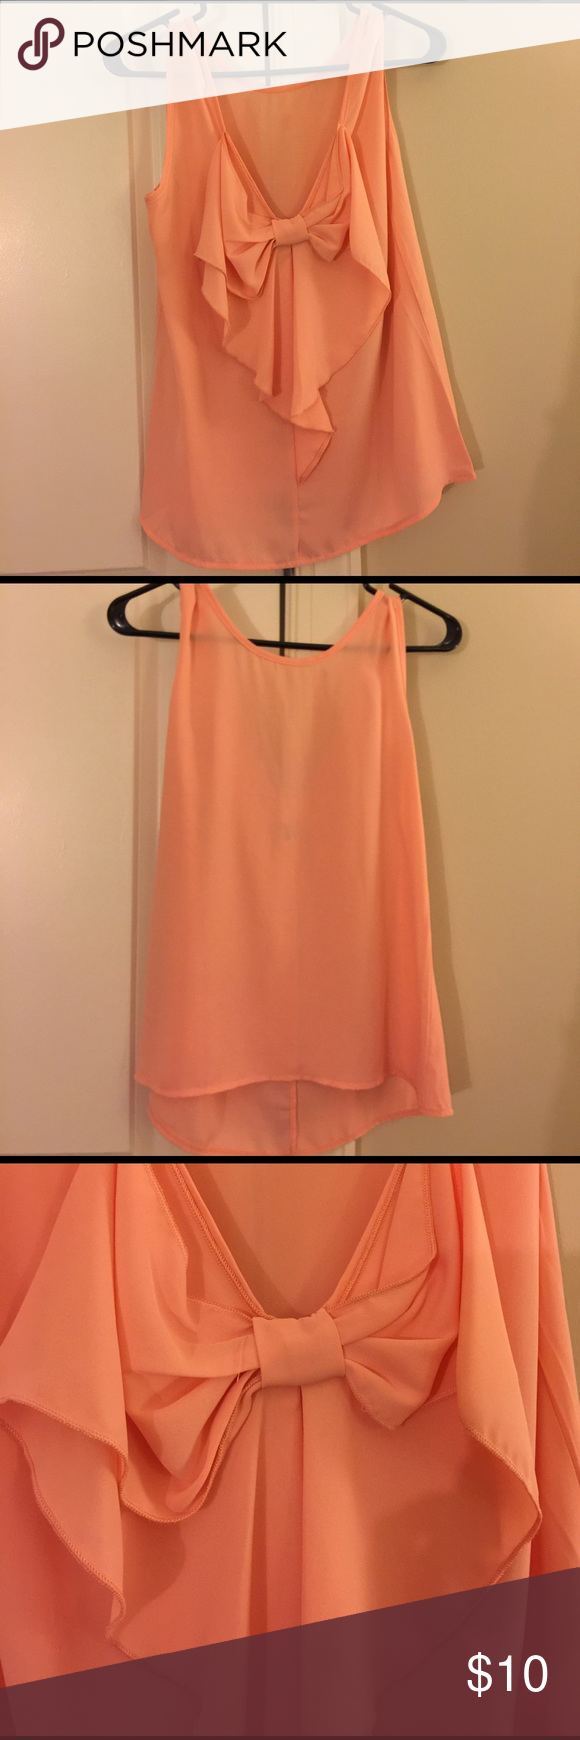 Francesca's Collections Peach Sheer Top  Francesca's Collections Peach Sheer Top . Worn once. I actually wore with a necklace I'm selling in my closet and the white skirt with purple/blue flowers (also in my closet). Bow is the back! Perfect for upcoming spring and summer! Get your wardrobe ready now :) Francesca's Collections Tops Tank Tops